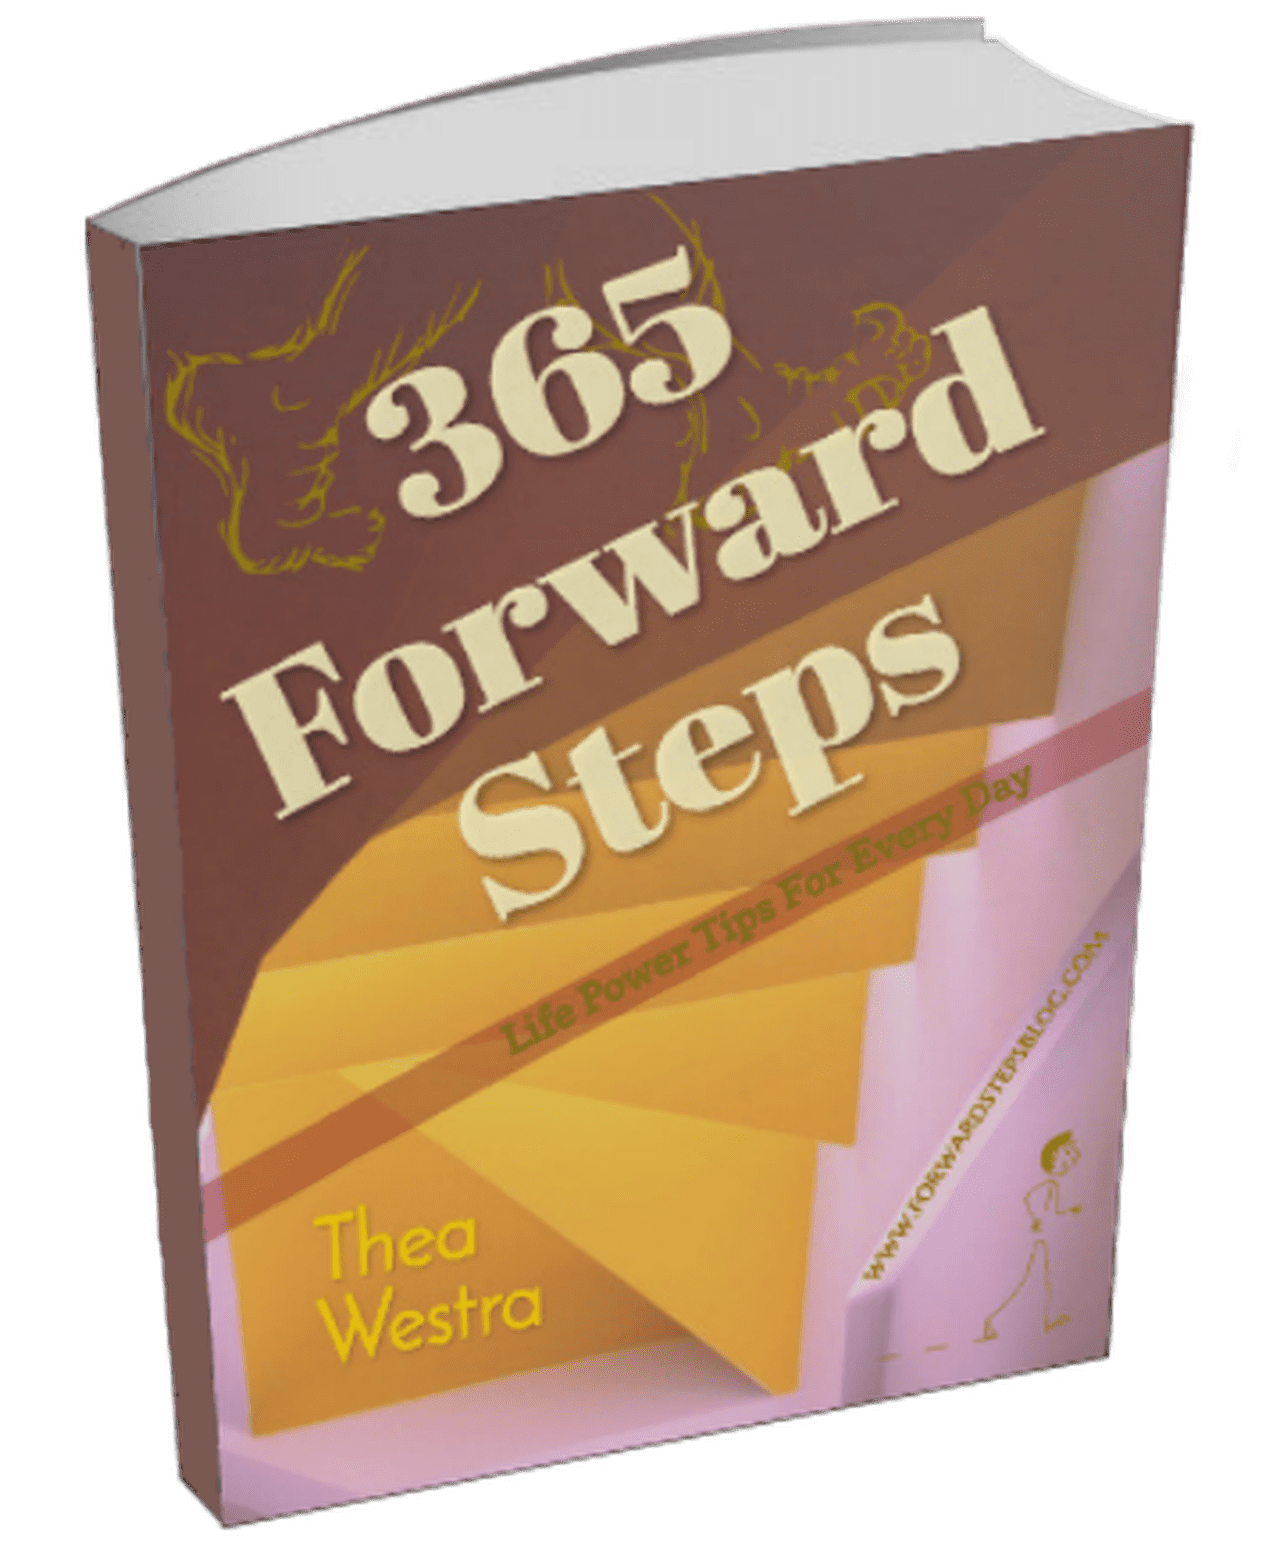 Self improvement book with title 365 Steps Forward